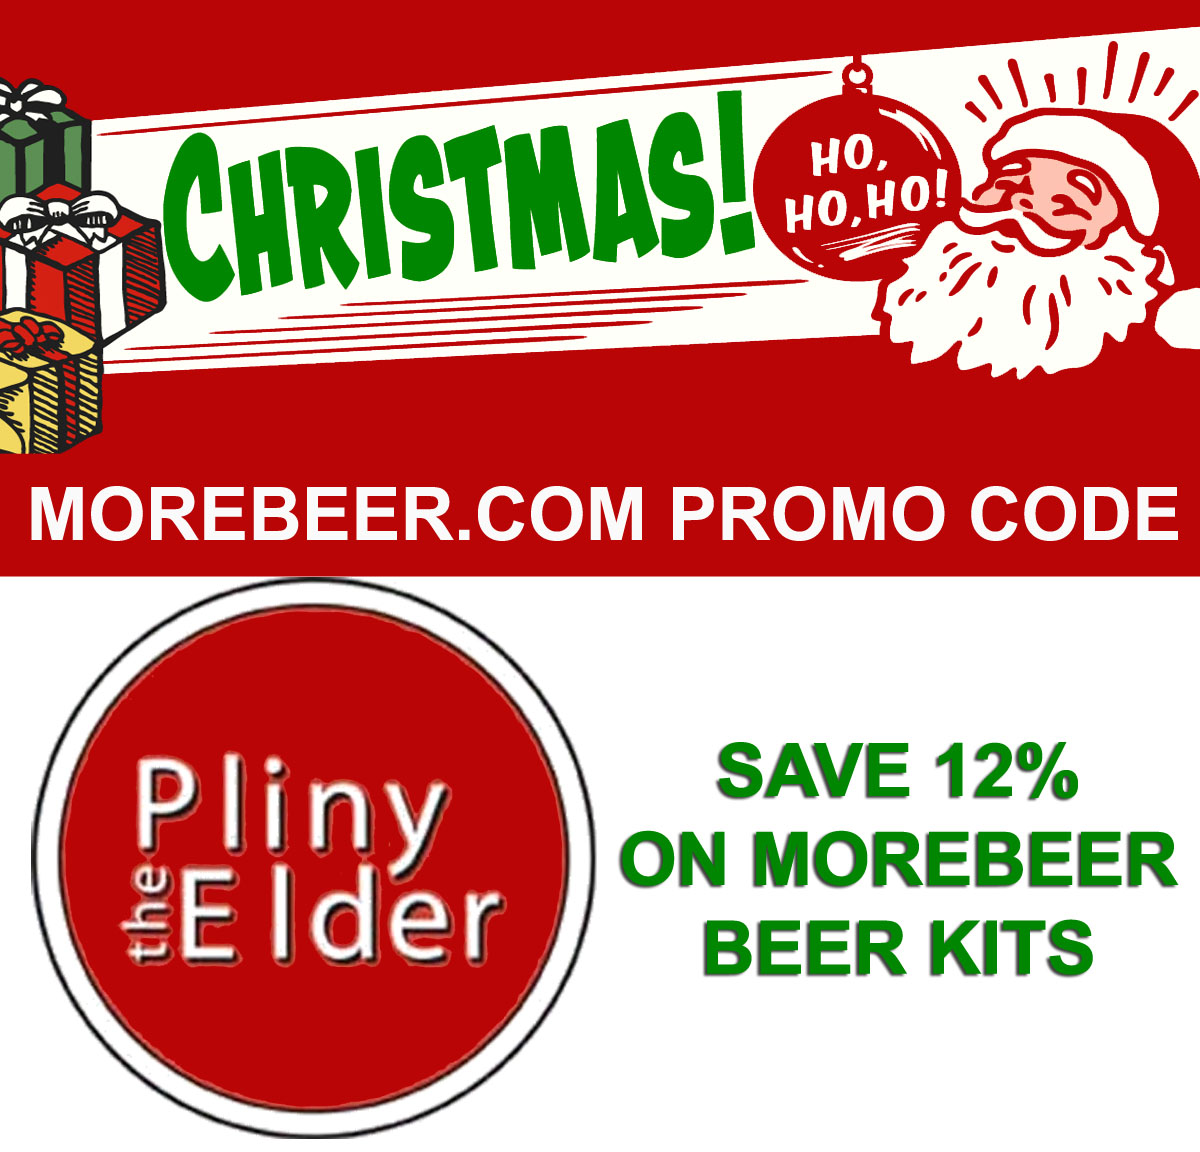 Coupon Code For Save 12% On All MoreMore.com Home Brewing Beer Recipe Kits Coupon Code